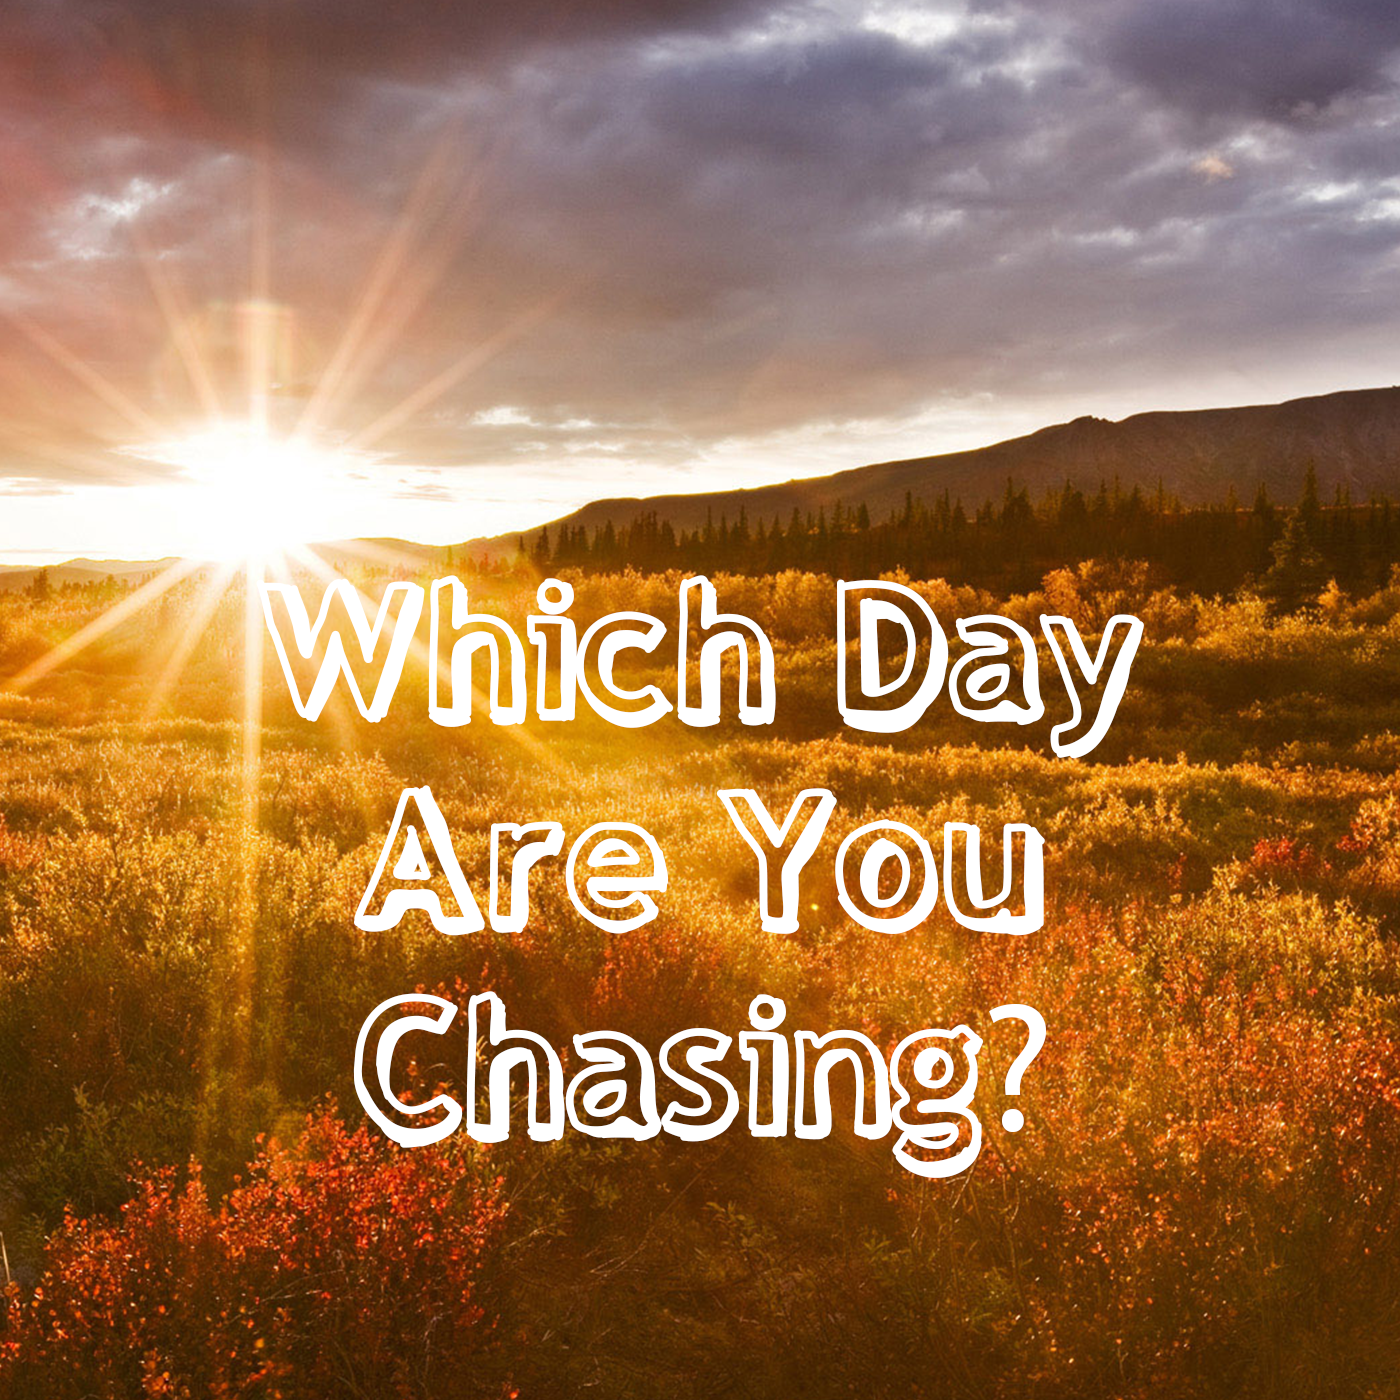 Which Day Are You Chasing?